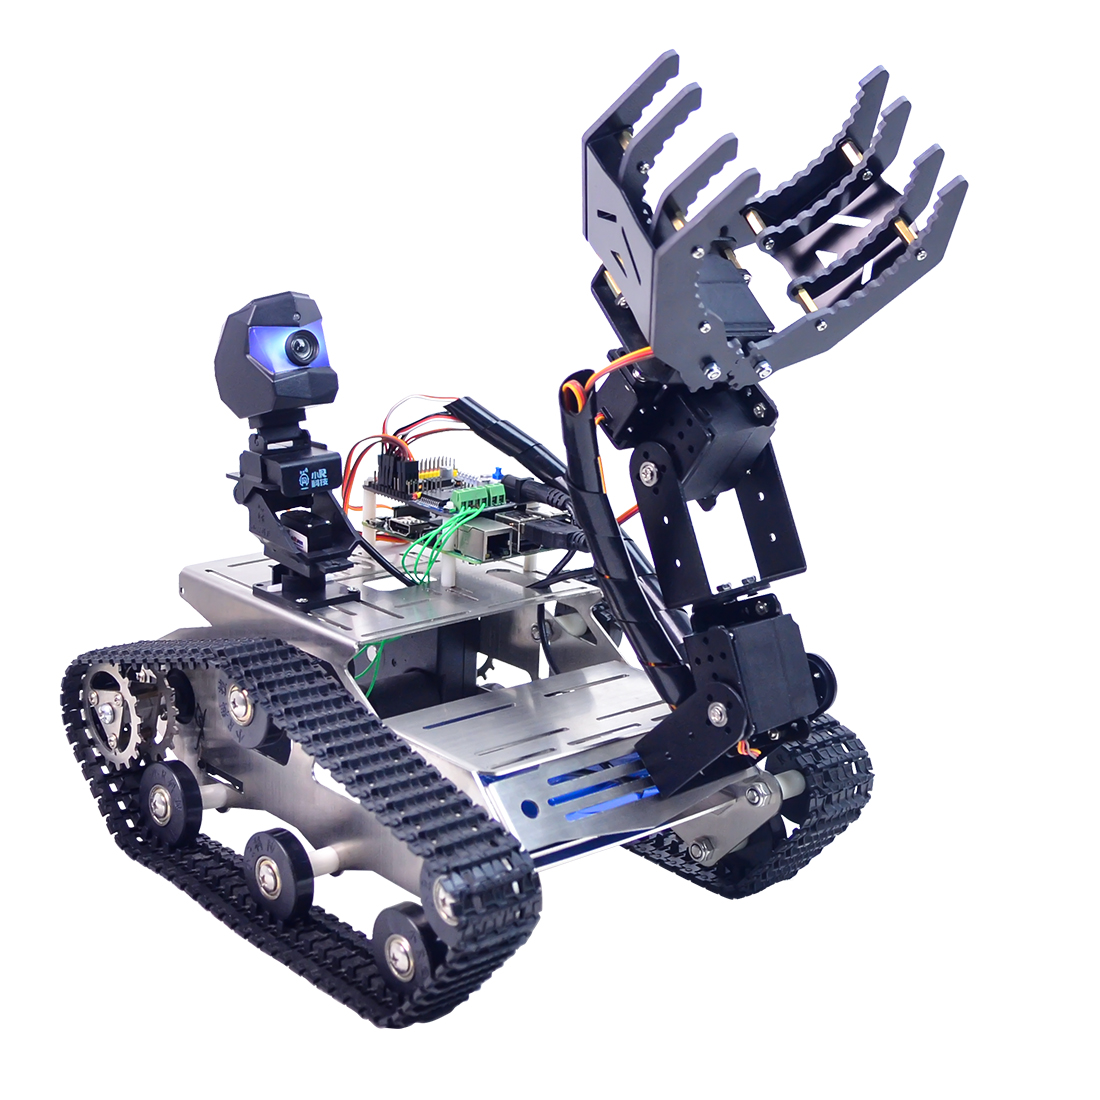 Programmable TH WiFi Bluetooth FPV Tank Robot Car With Arm For Raspberry Pi Line Patrol Obstacle Avoidance Version Large Claw